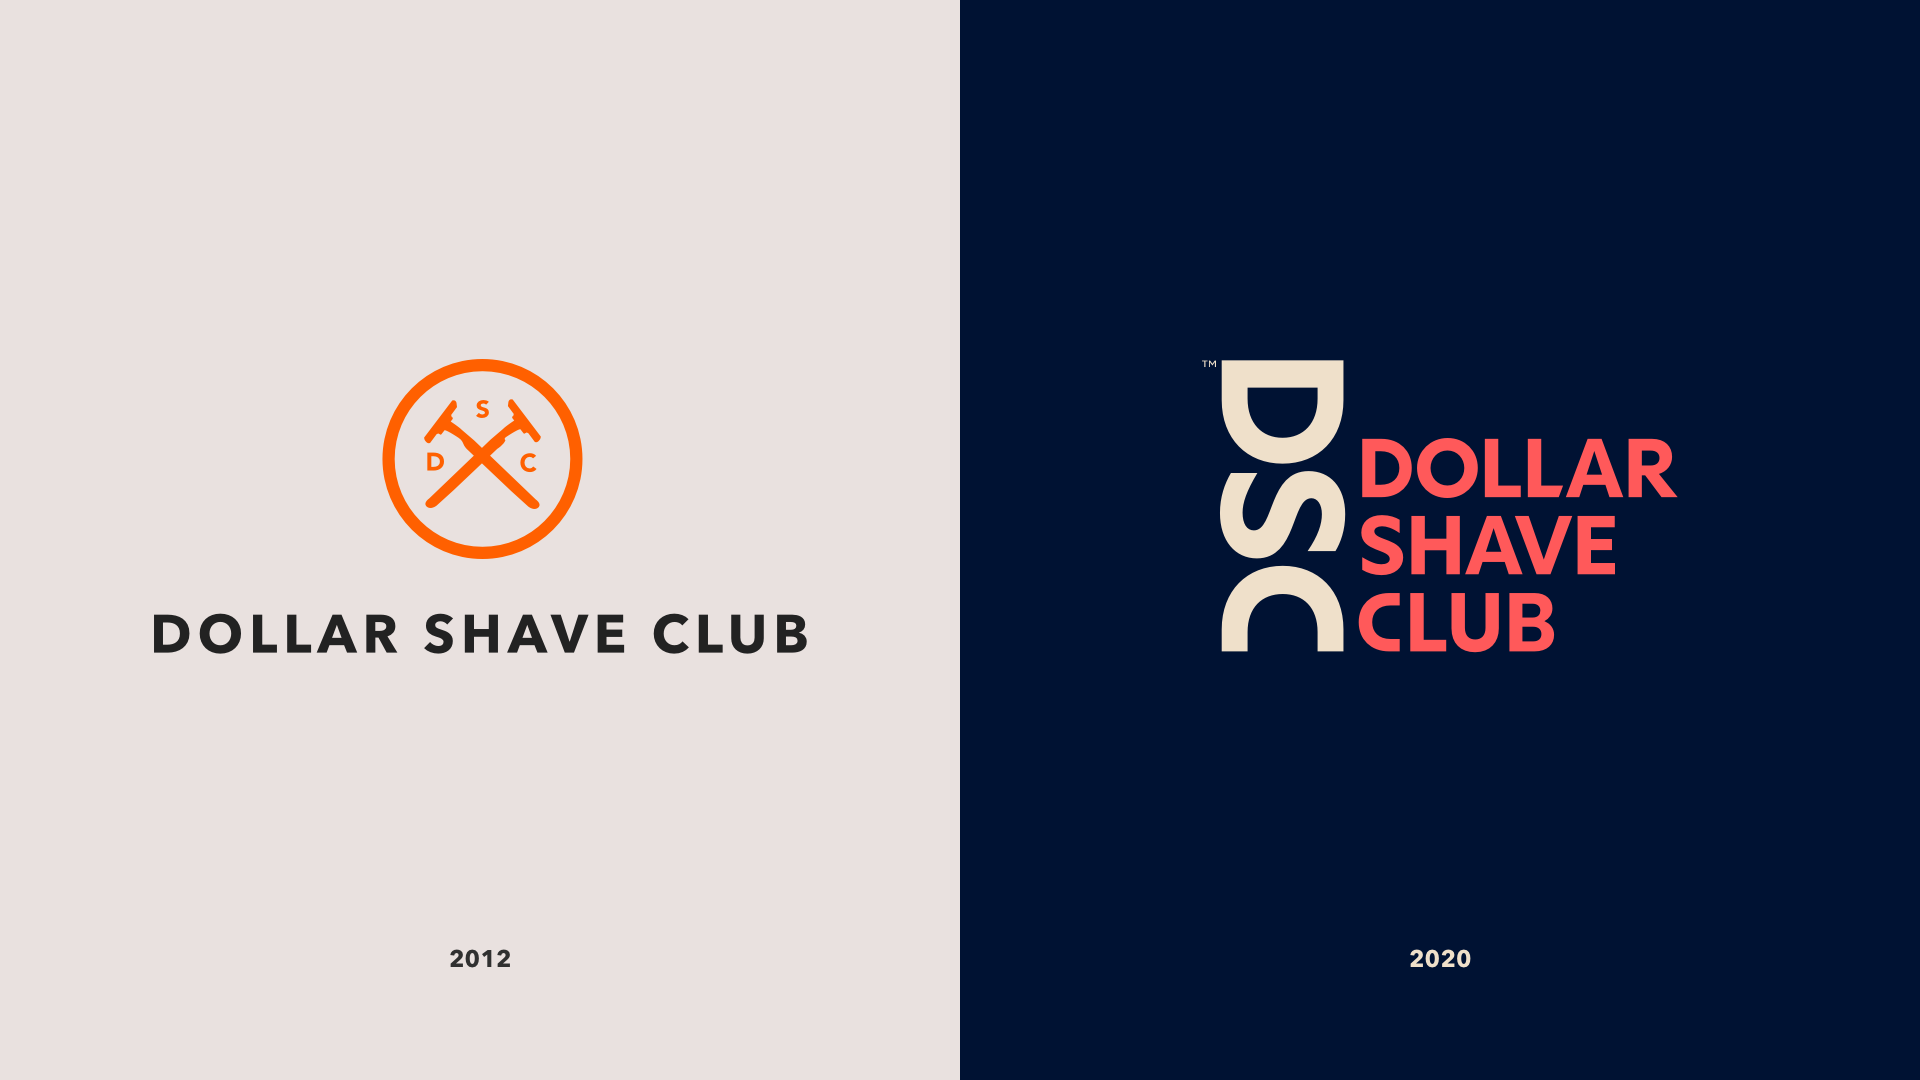 Dollar Shave Club's old and new logo